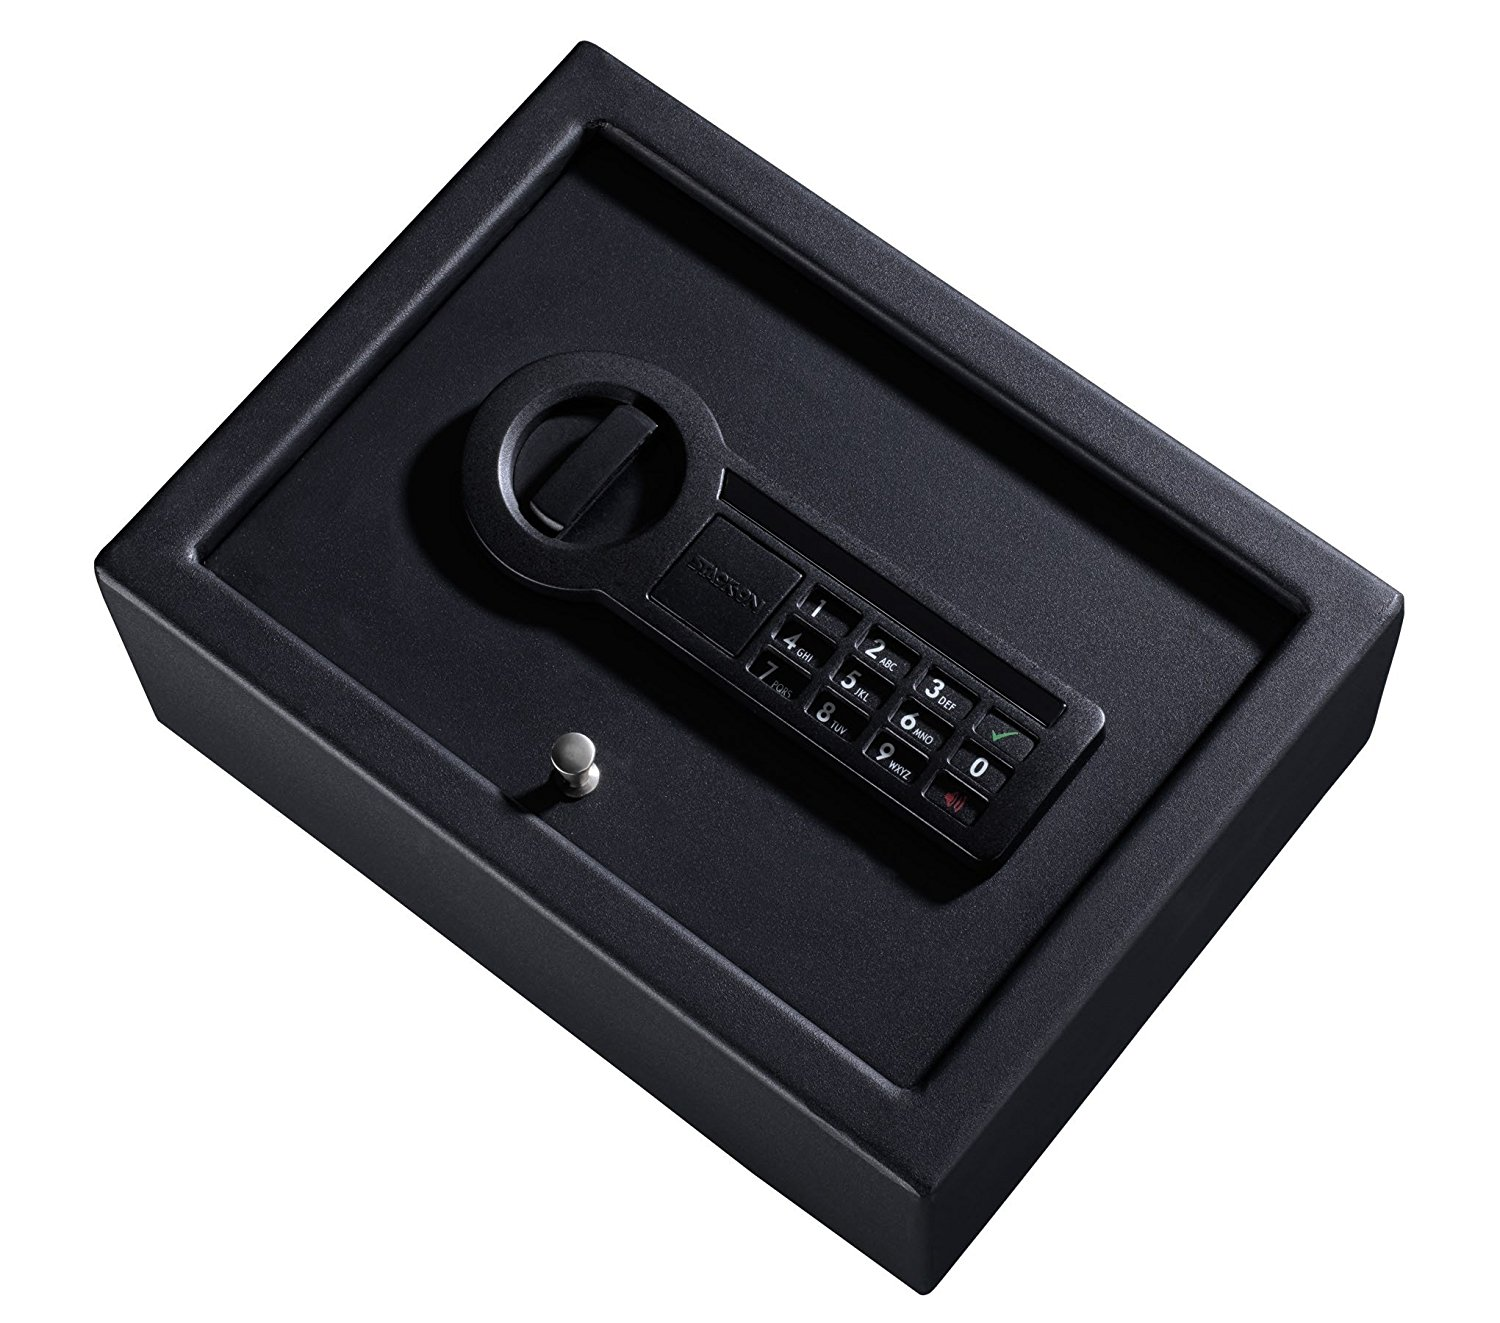 sleek design of the Stack-On PDS-1500 Drawer Safe with Electronic Lock